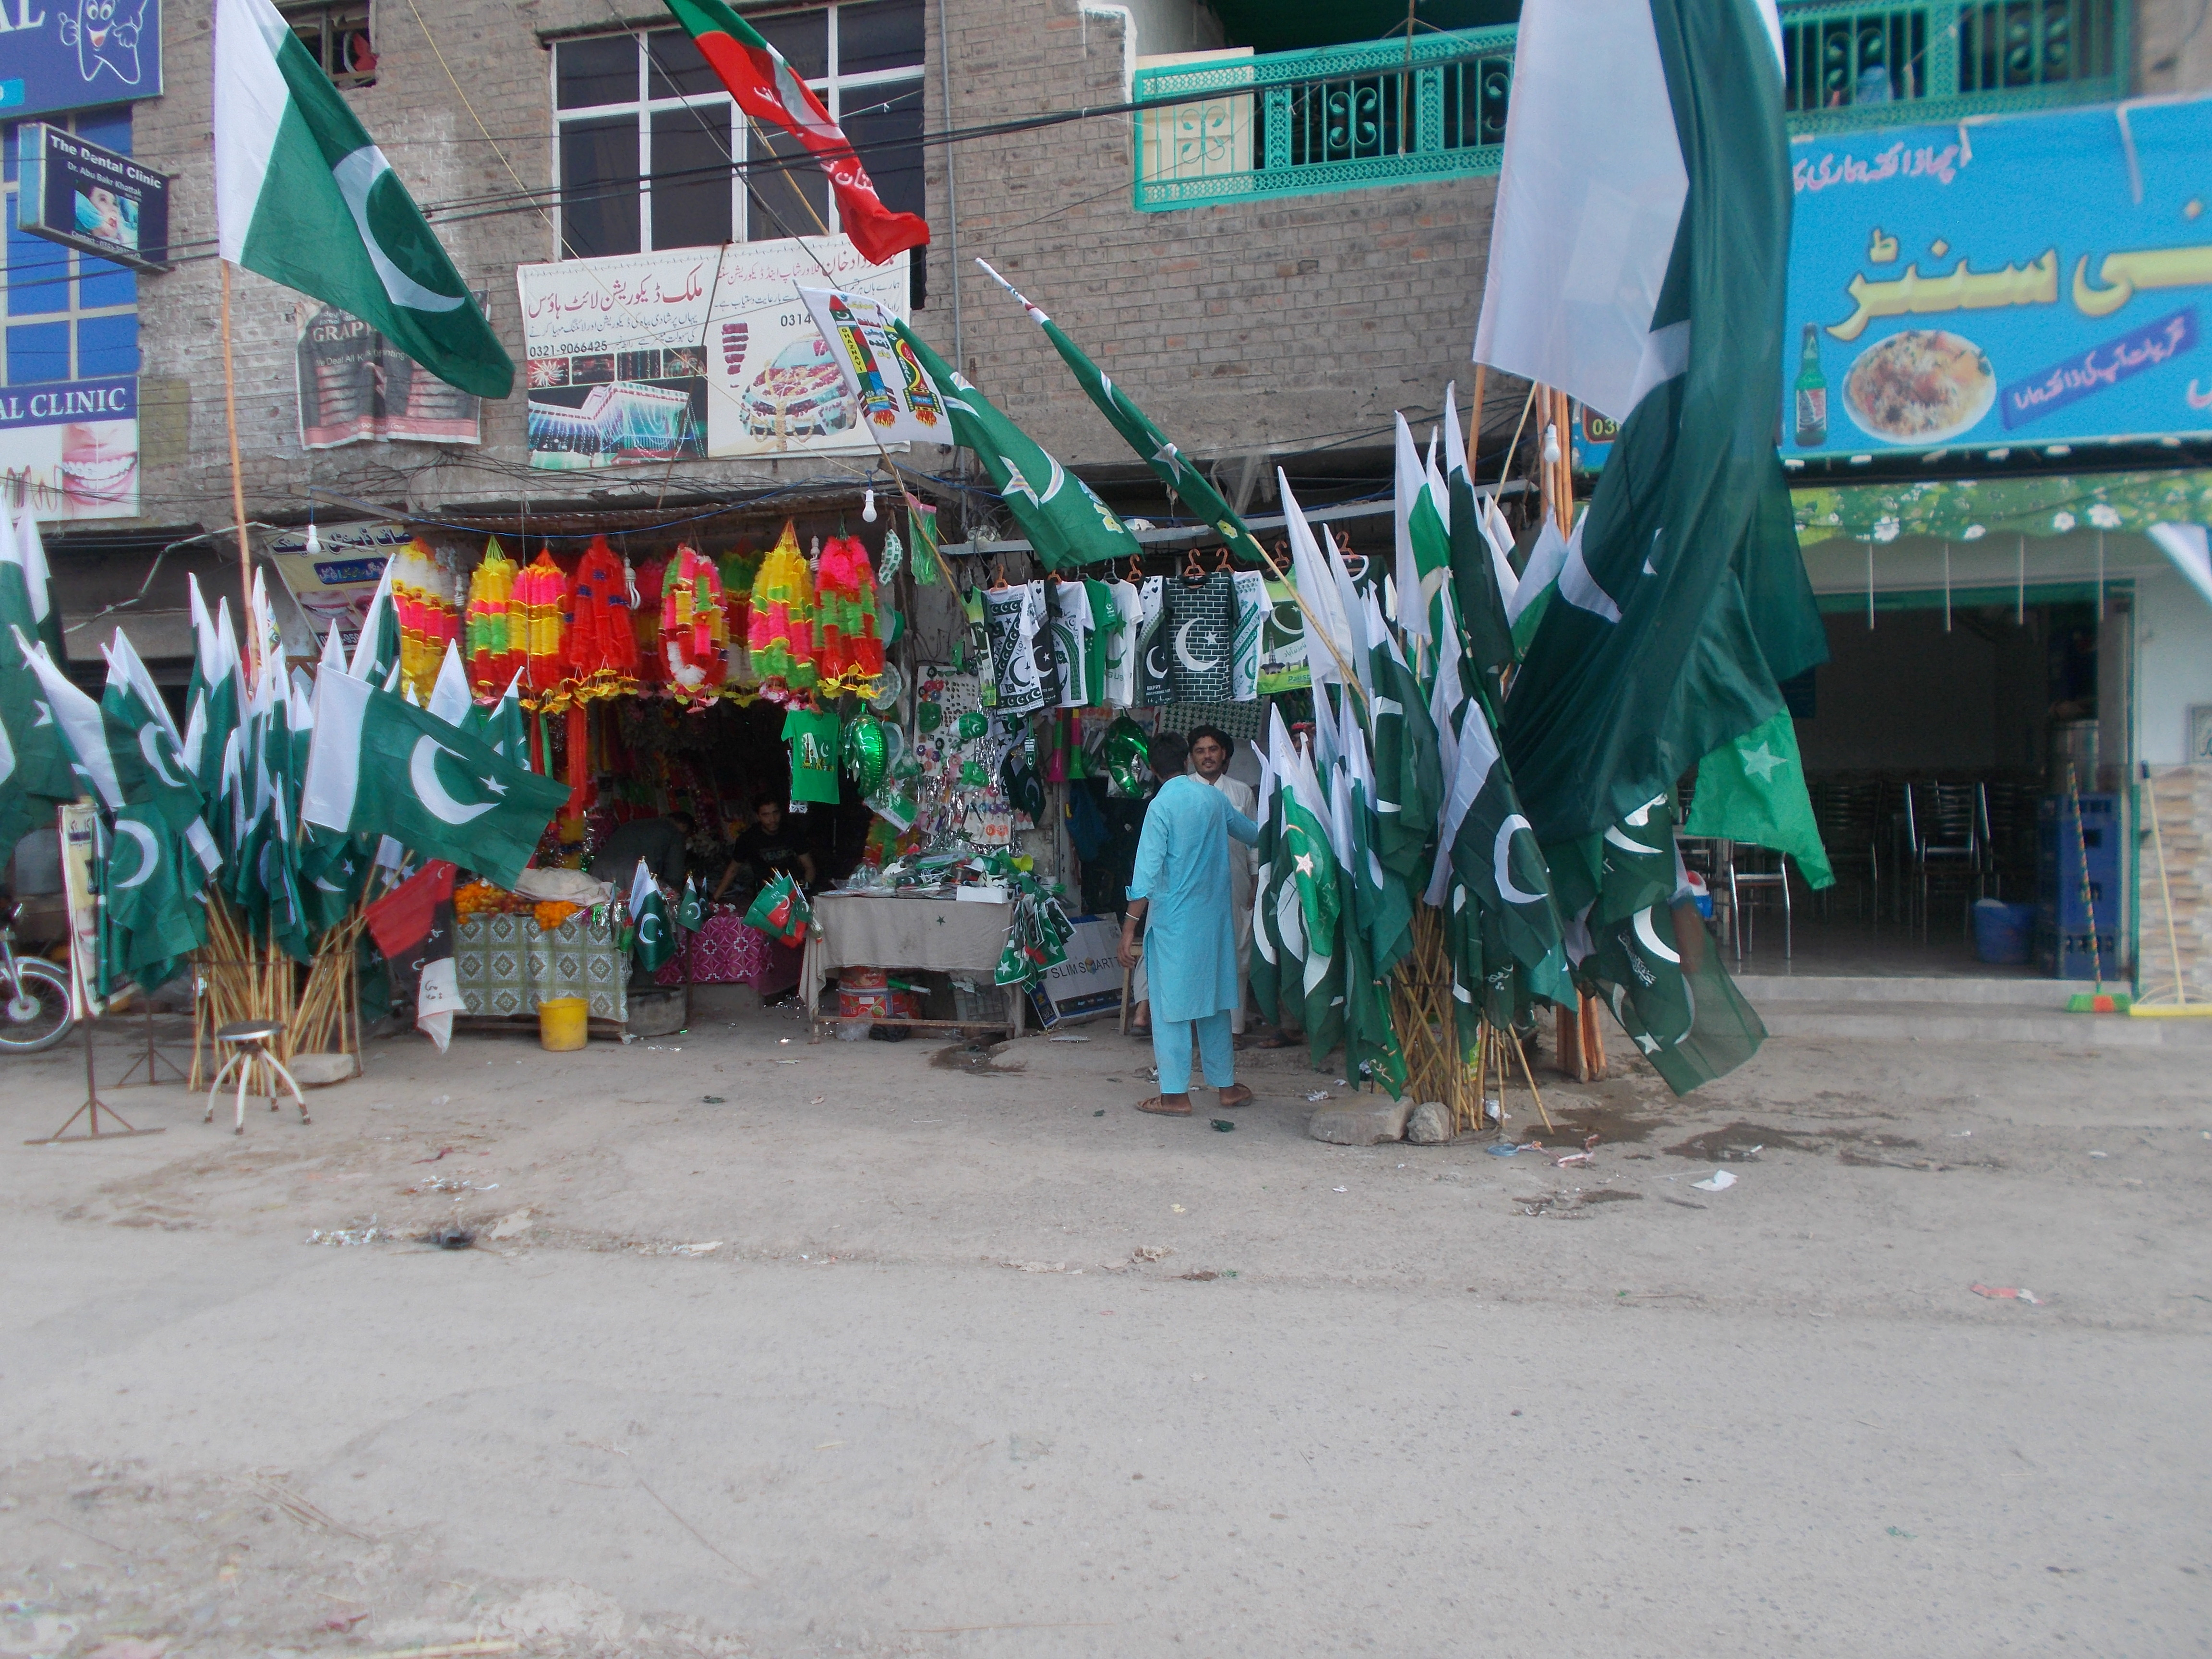 Business booms in Peshawar August 4 as shops offer flags and other souvenirs to celebrate Independence Day (August 14). [Ashfaq Yusufzai]